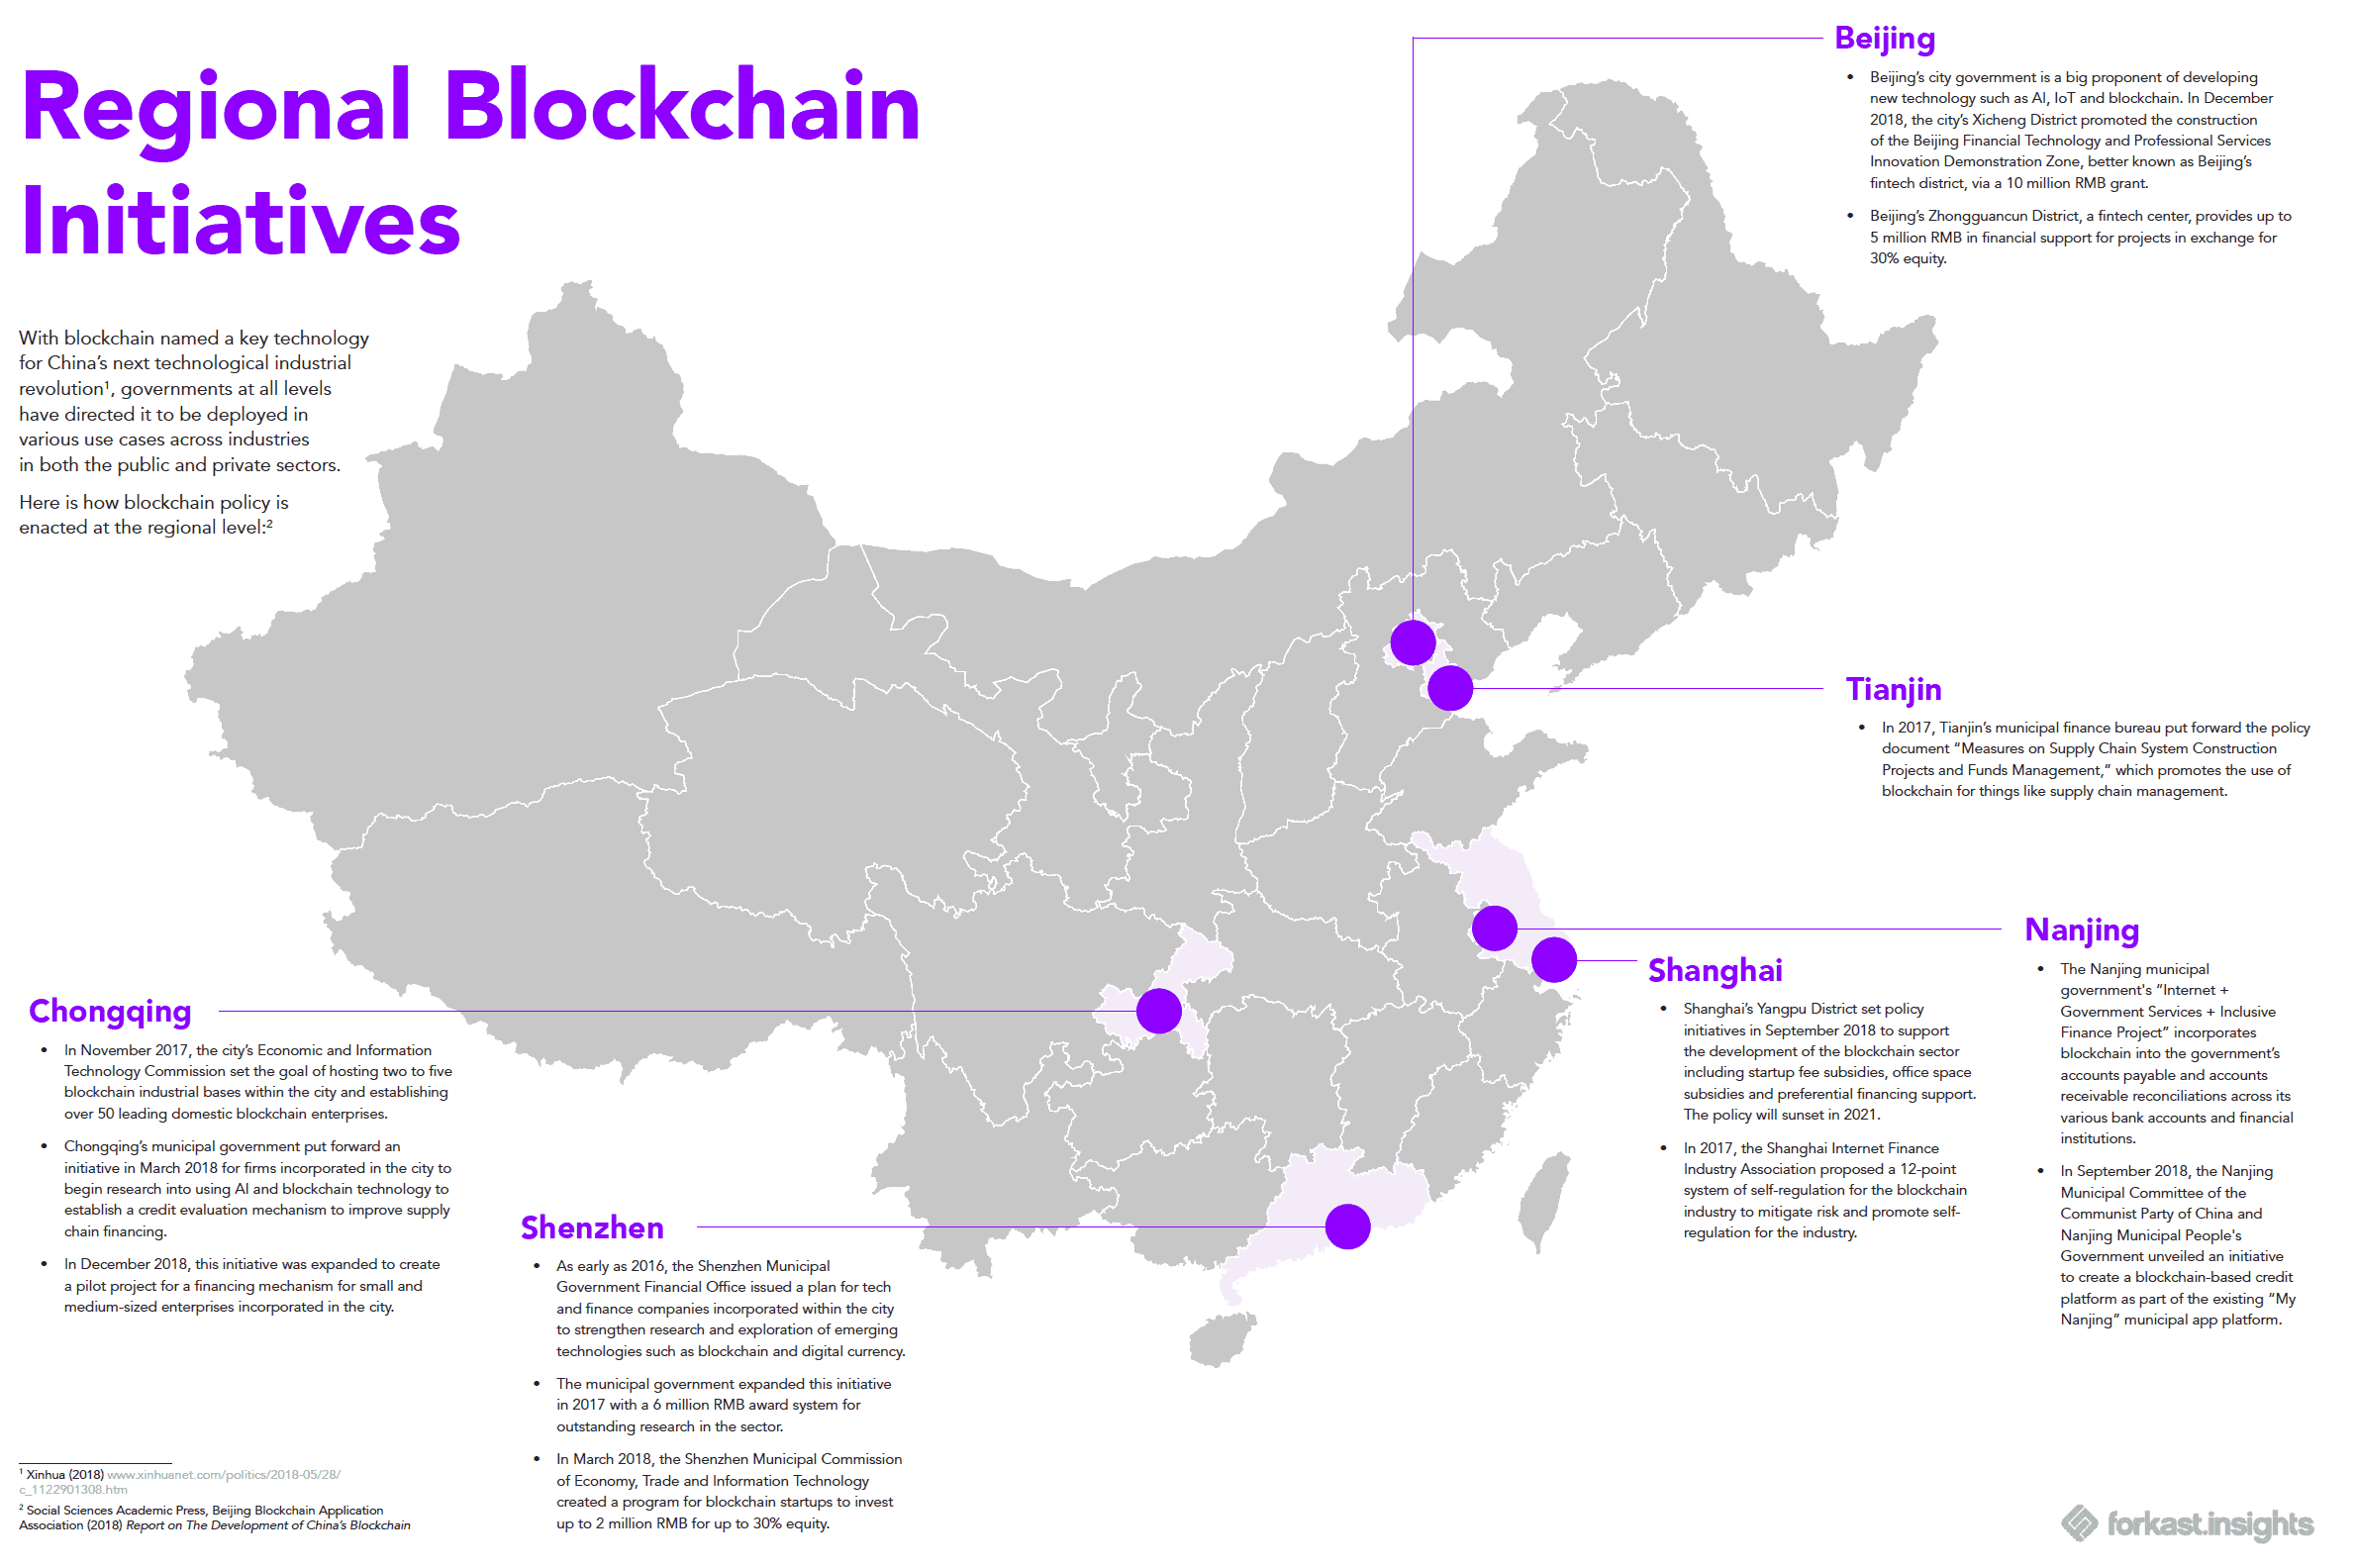 China's Central Bank Wants to Speed Up Blockchain Adoption